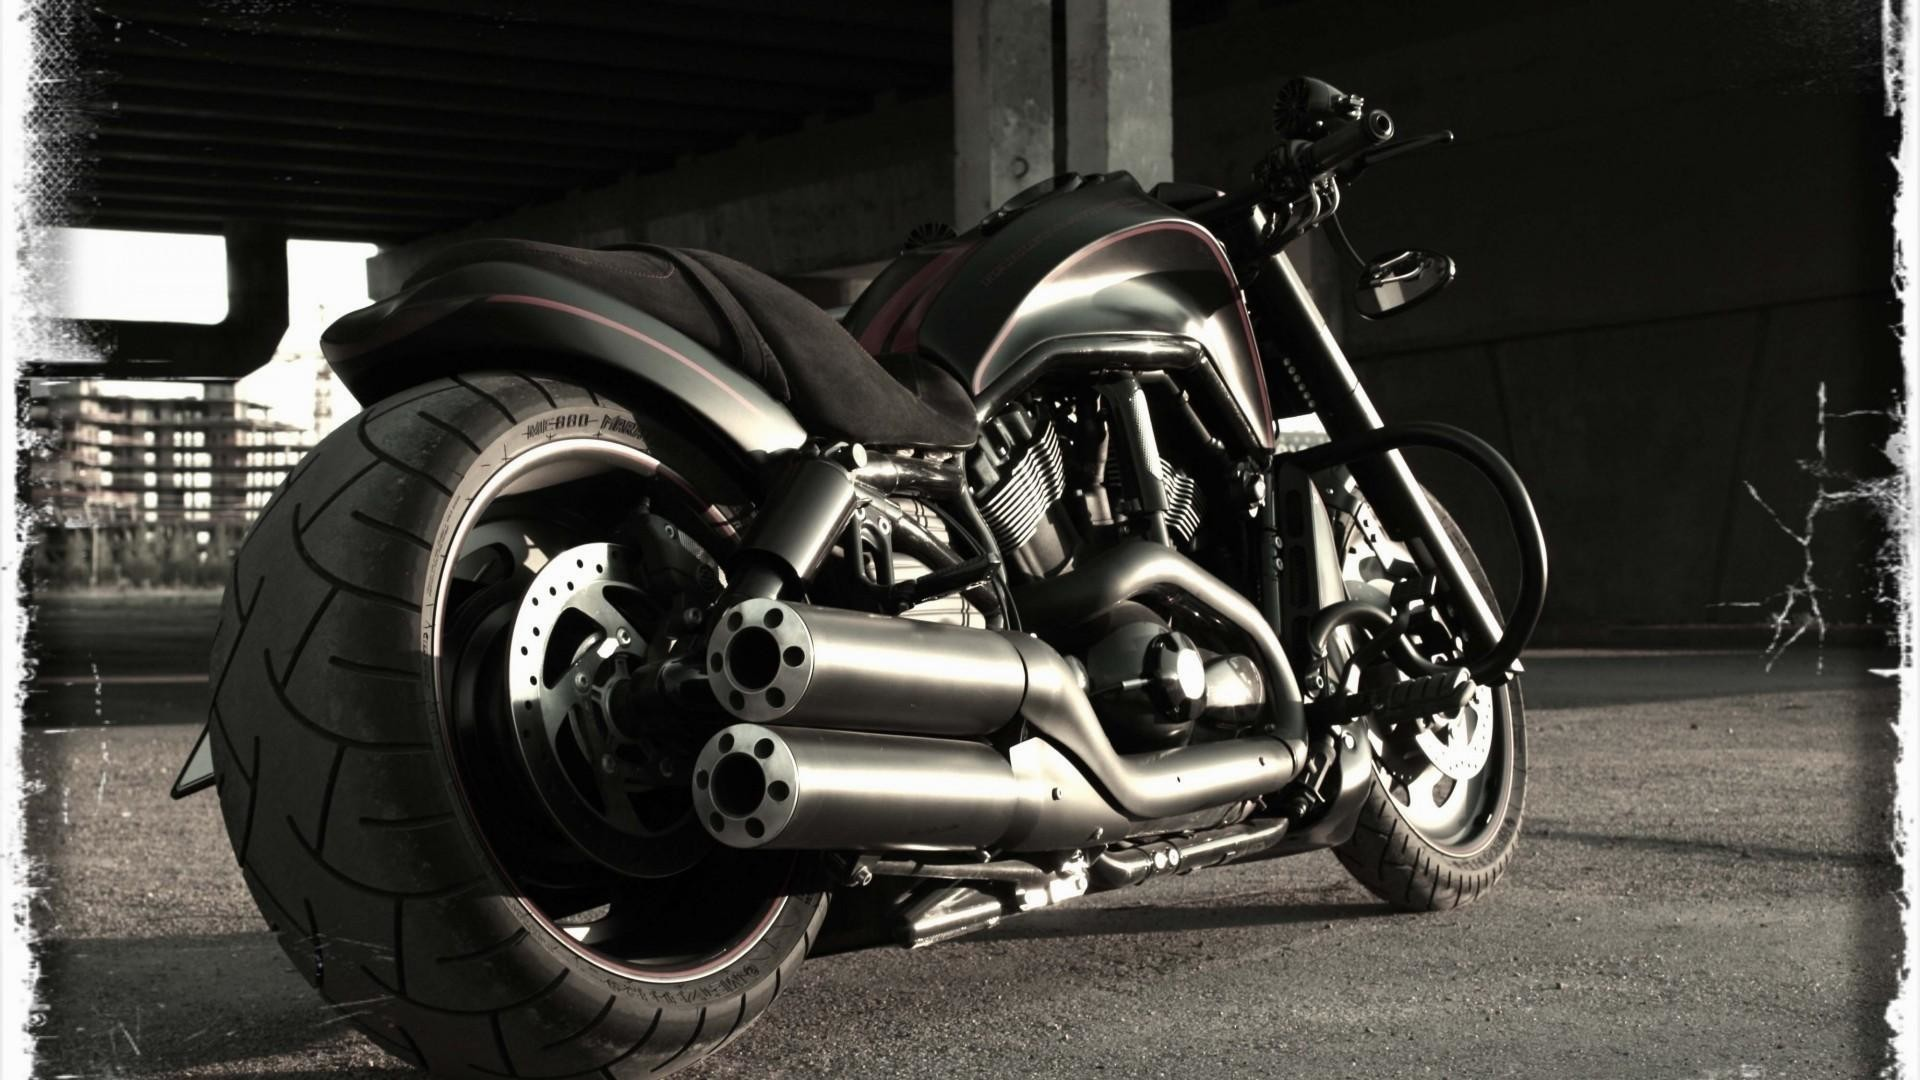 1920x1080 10. harley-davidson-wallpapers-HD10-600x338